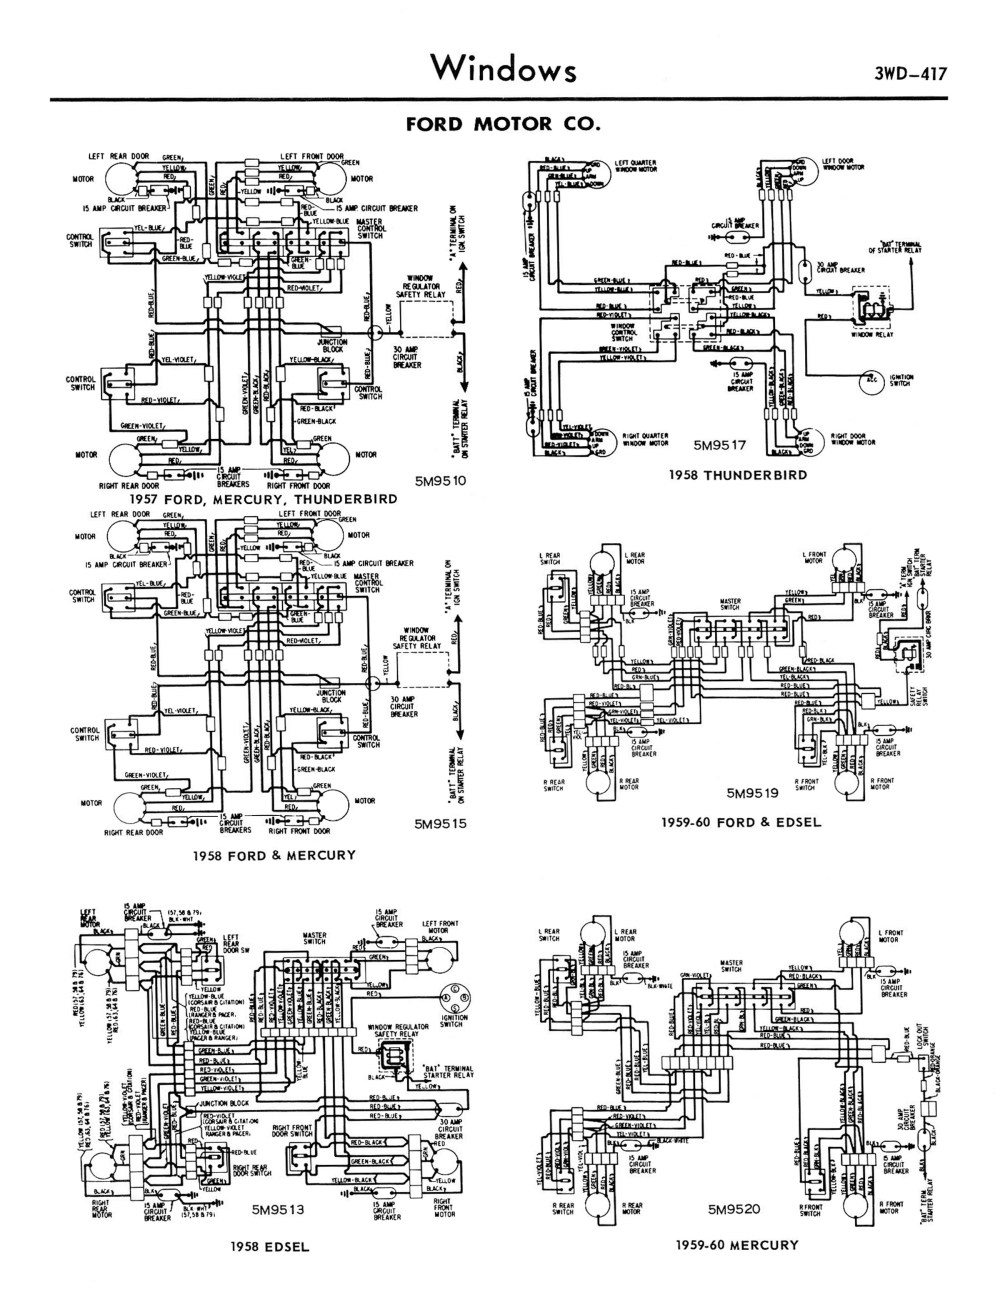 medium resolution of 1958 thunderbird wiring diagram 31 wiring diagram images 1956 thunderbird 1955 thunderbird